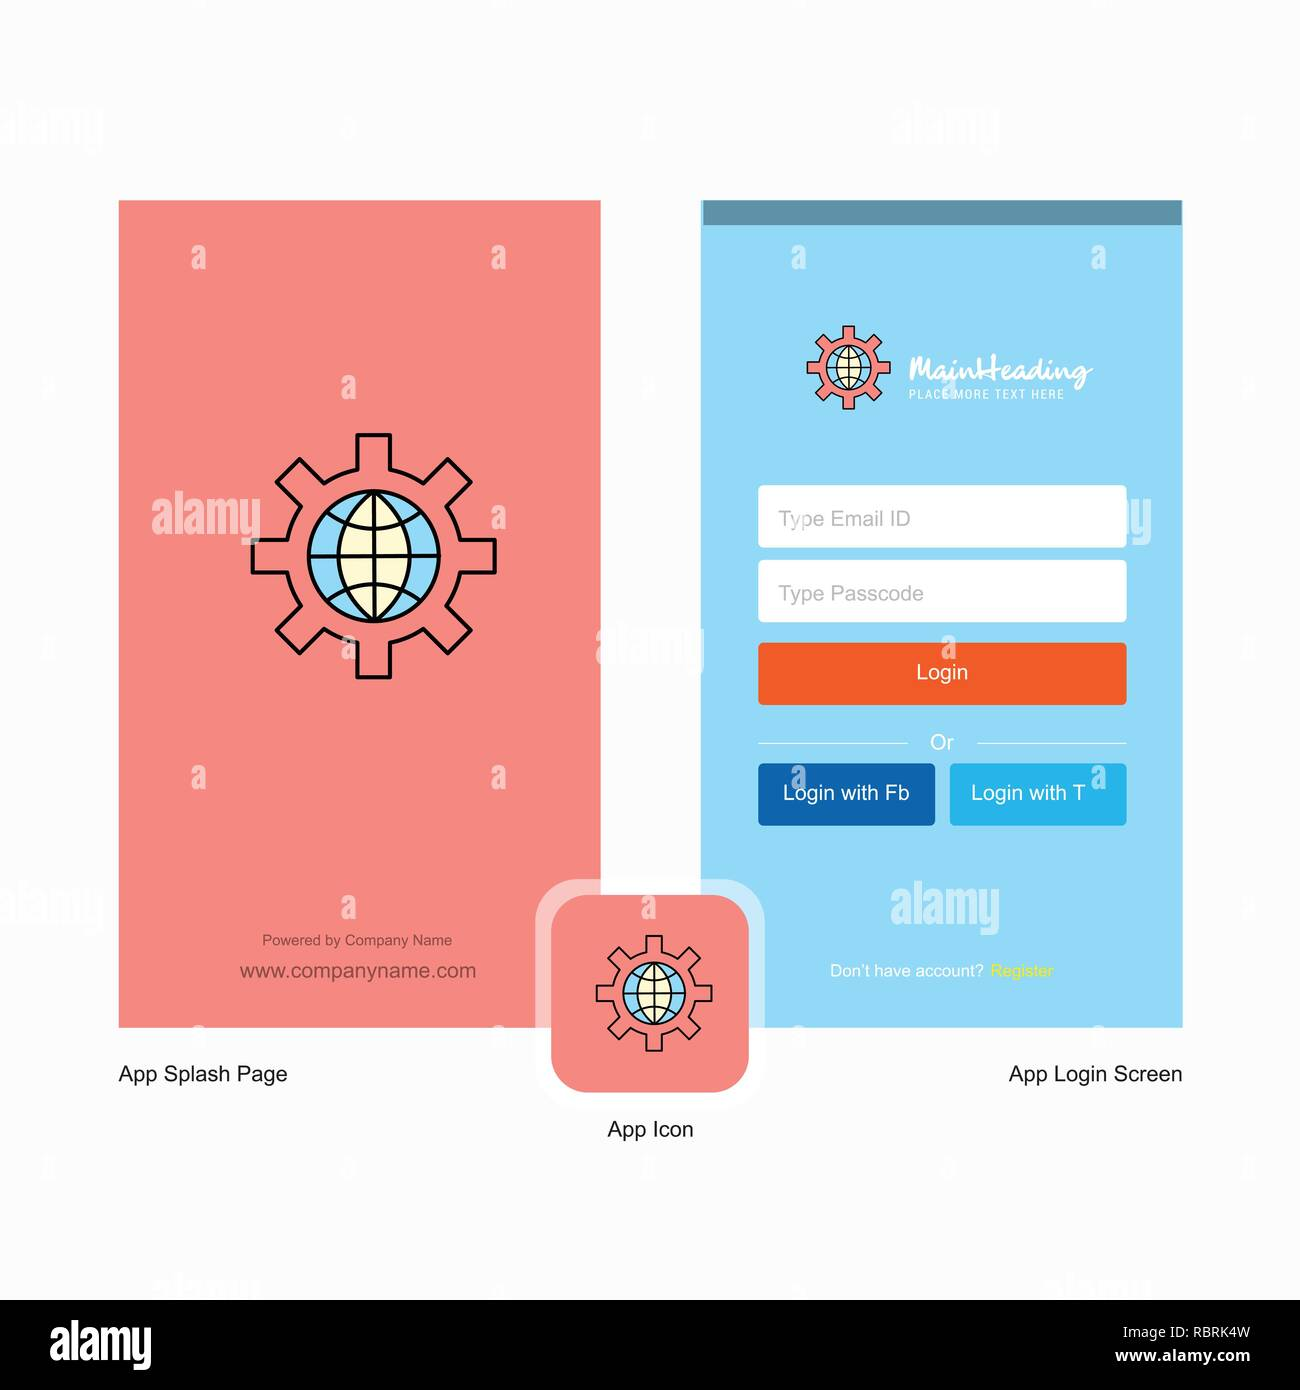 Company Internet setting Splash Screen and Login Page design with